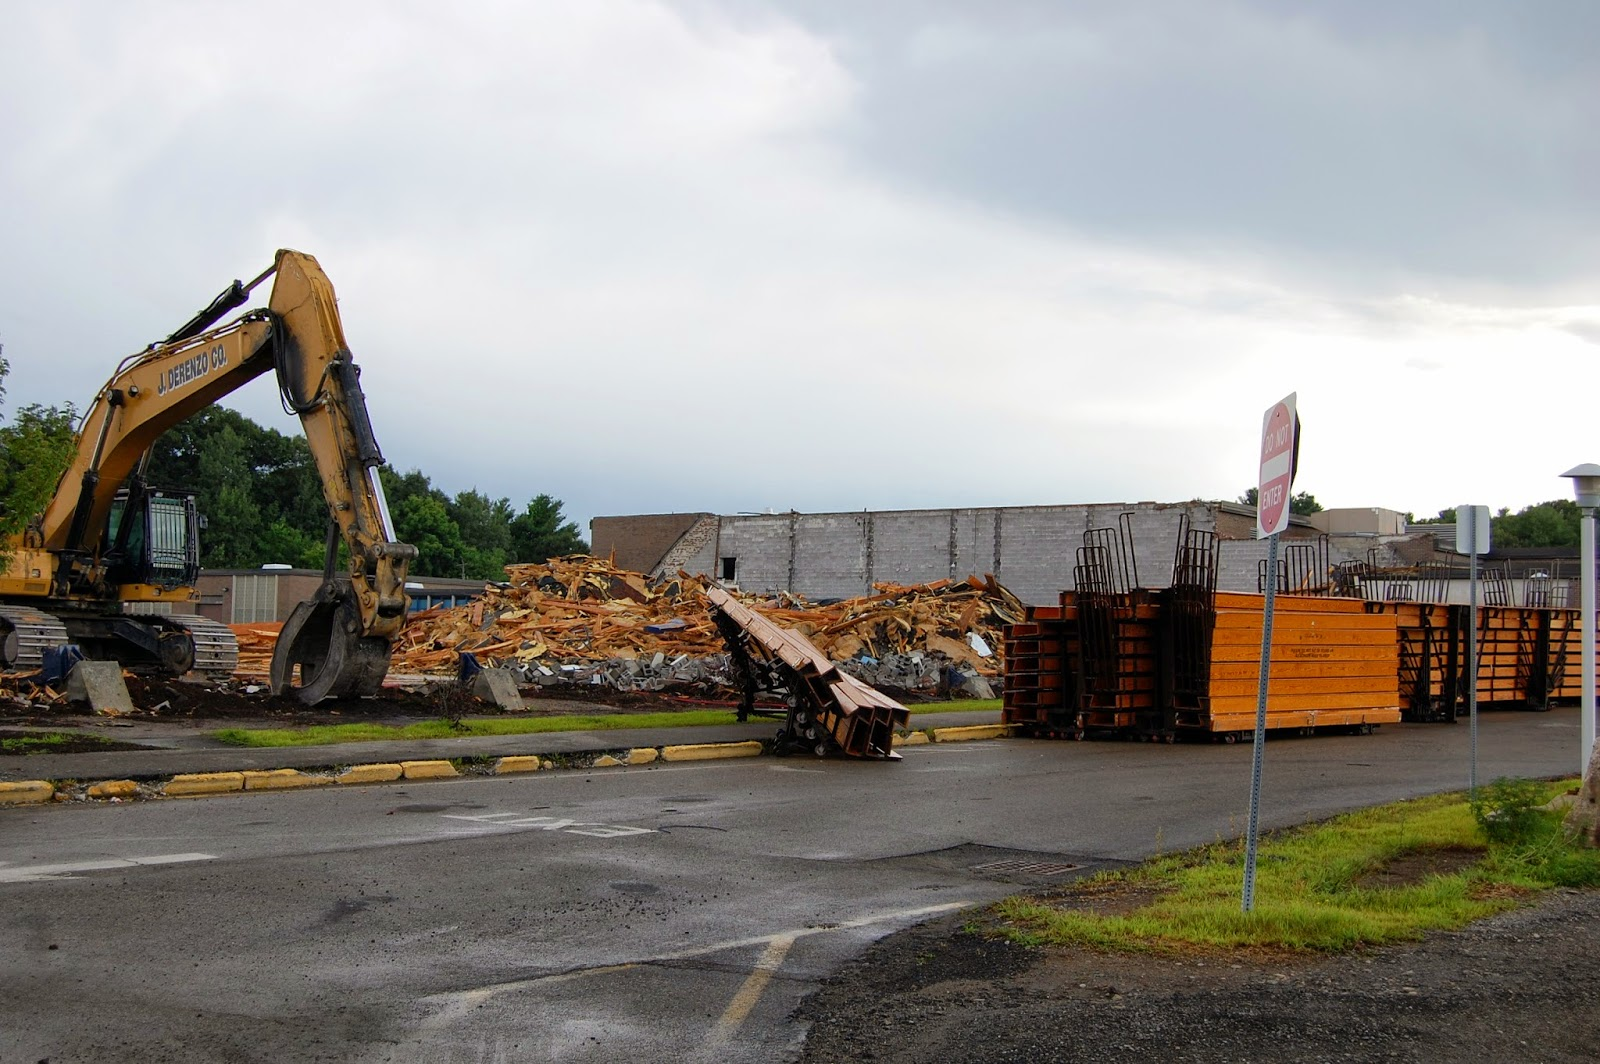 The remaining wall is for the small gym. It shows the arc of where the field house was